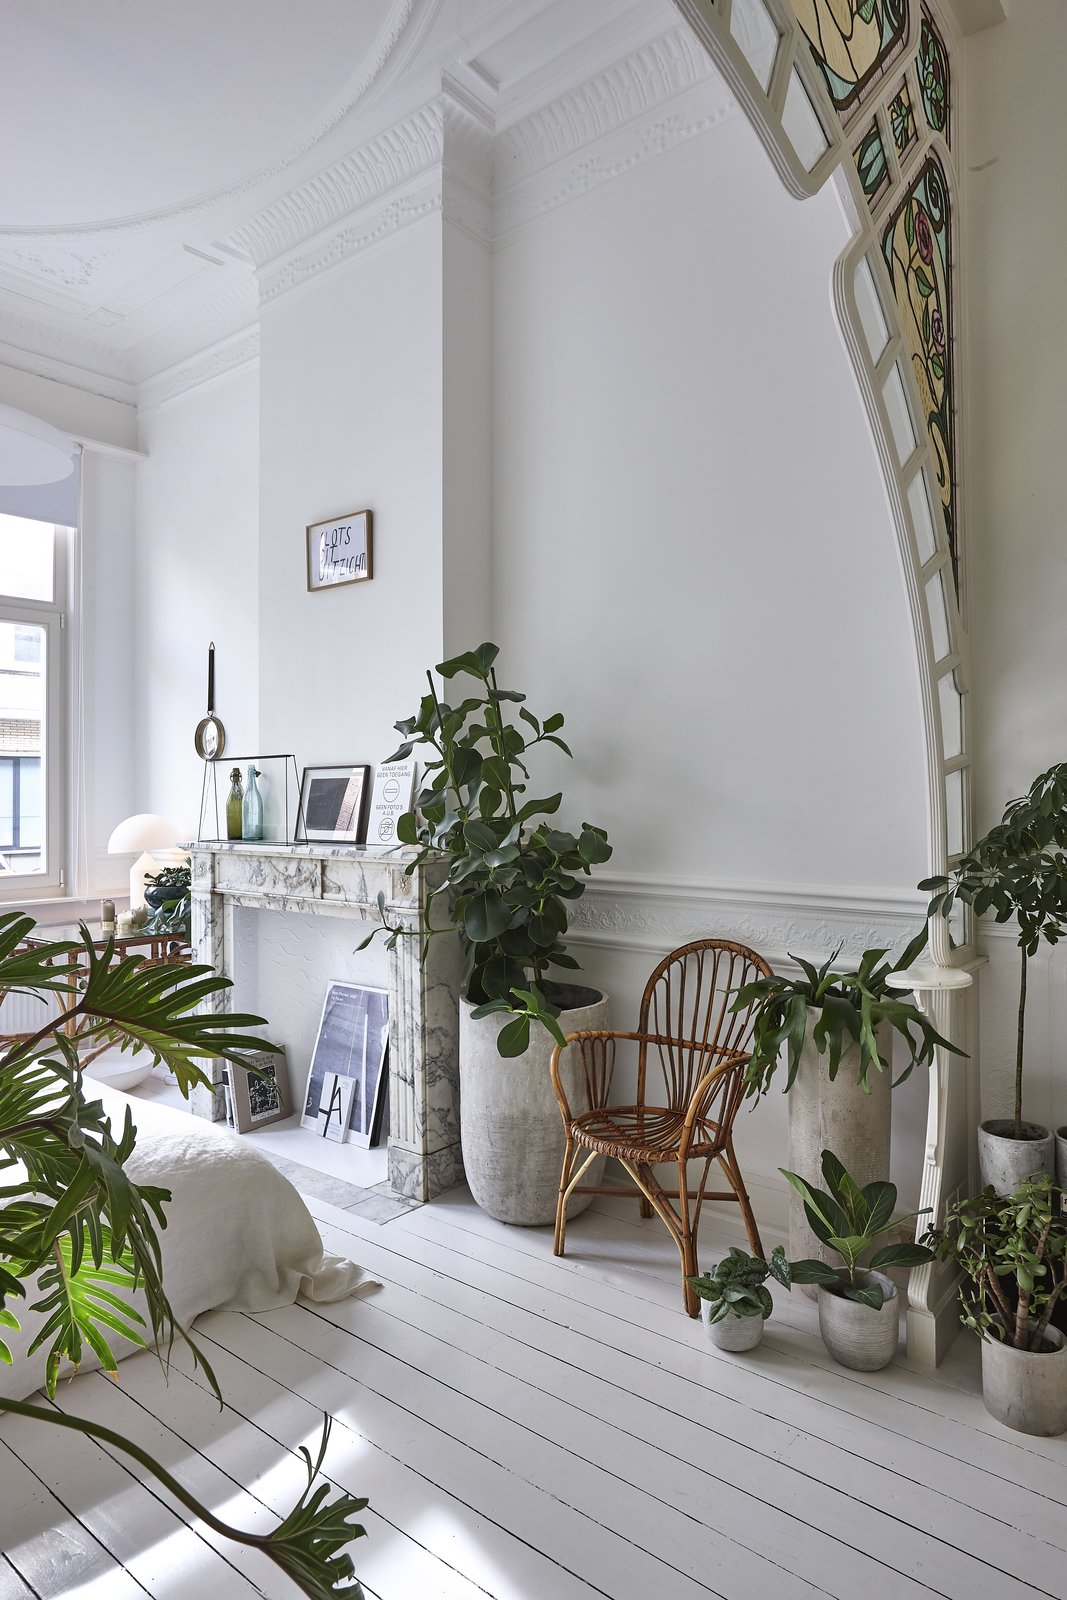 Bedroom, Bed, Chair, Table, and Painted Wood The kitchen opens out to a bright garden, and the master bedroom overlooks the streets.    Best Bedroom Painted Wood Table Photos from An Antwerp Apartment Captures the Spirit of the Belle Époque